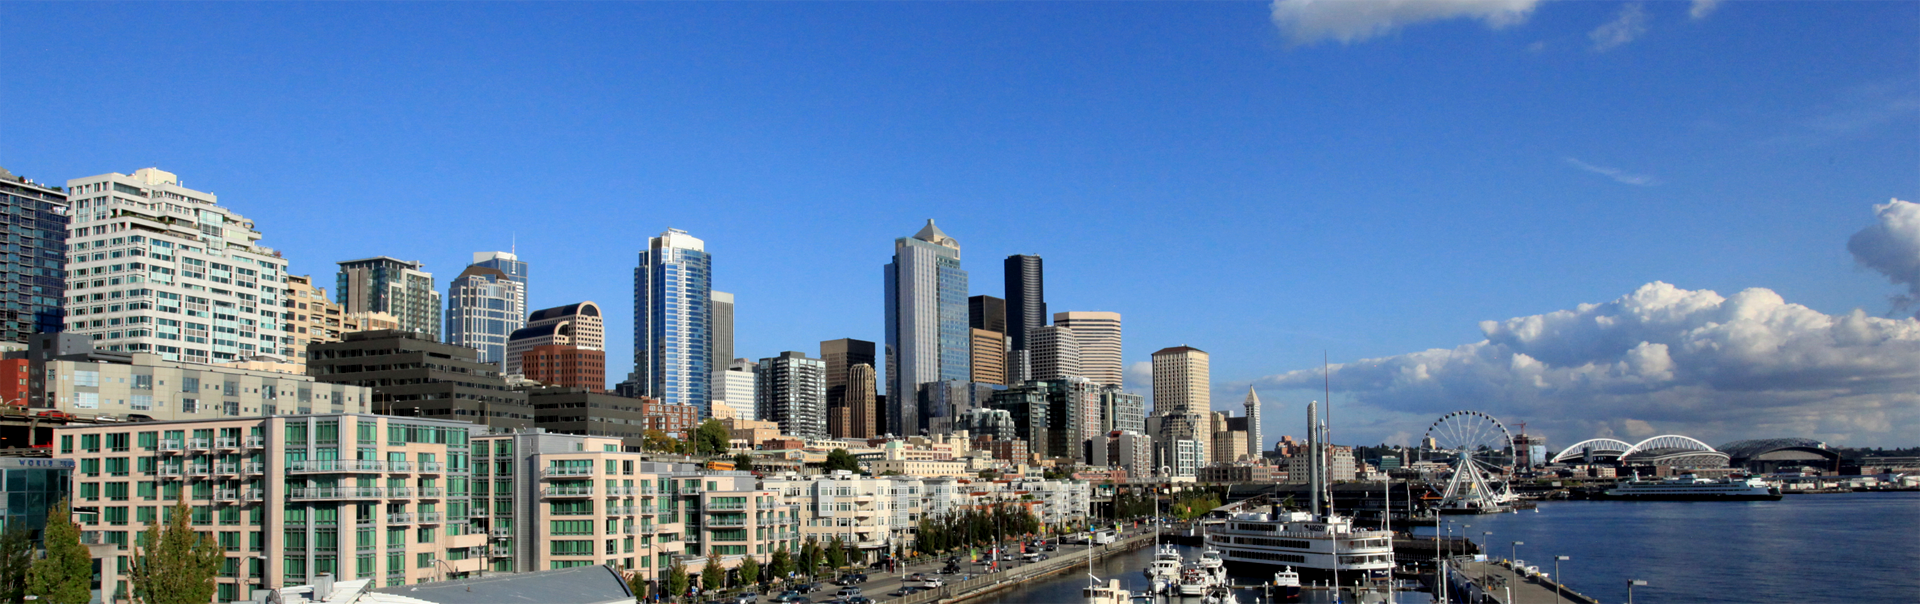 stetner-media-seattle-skyline-banner1